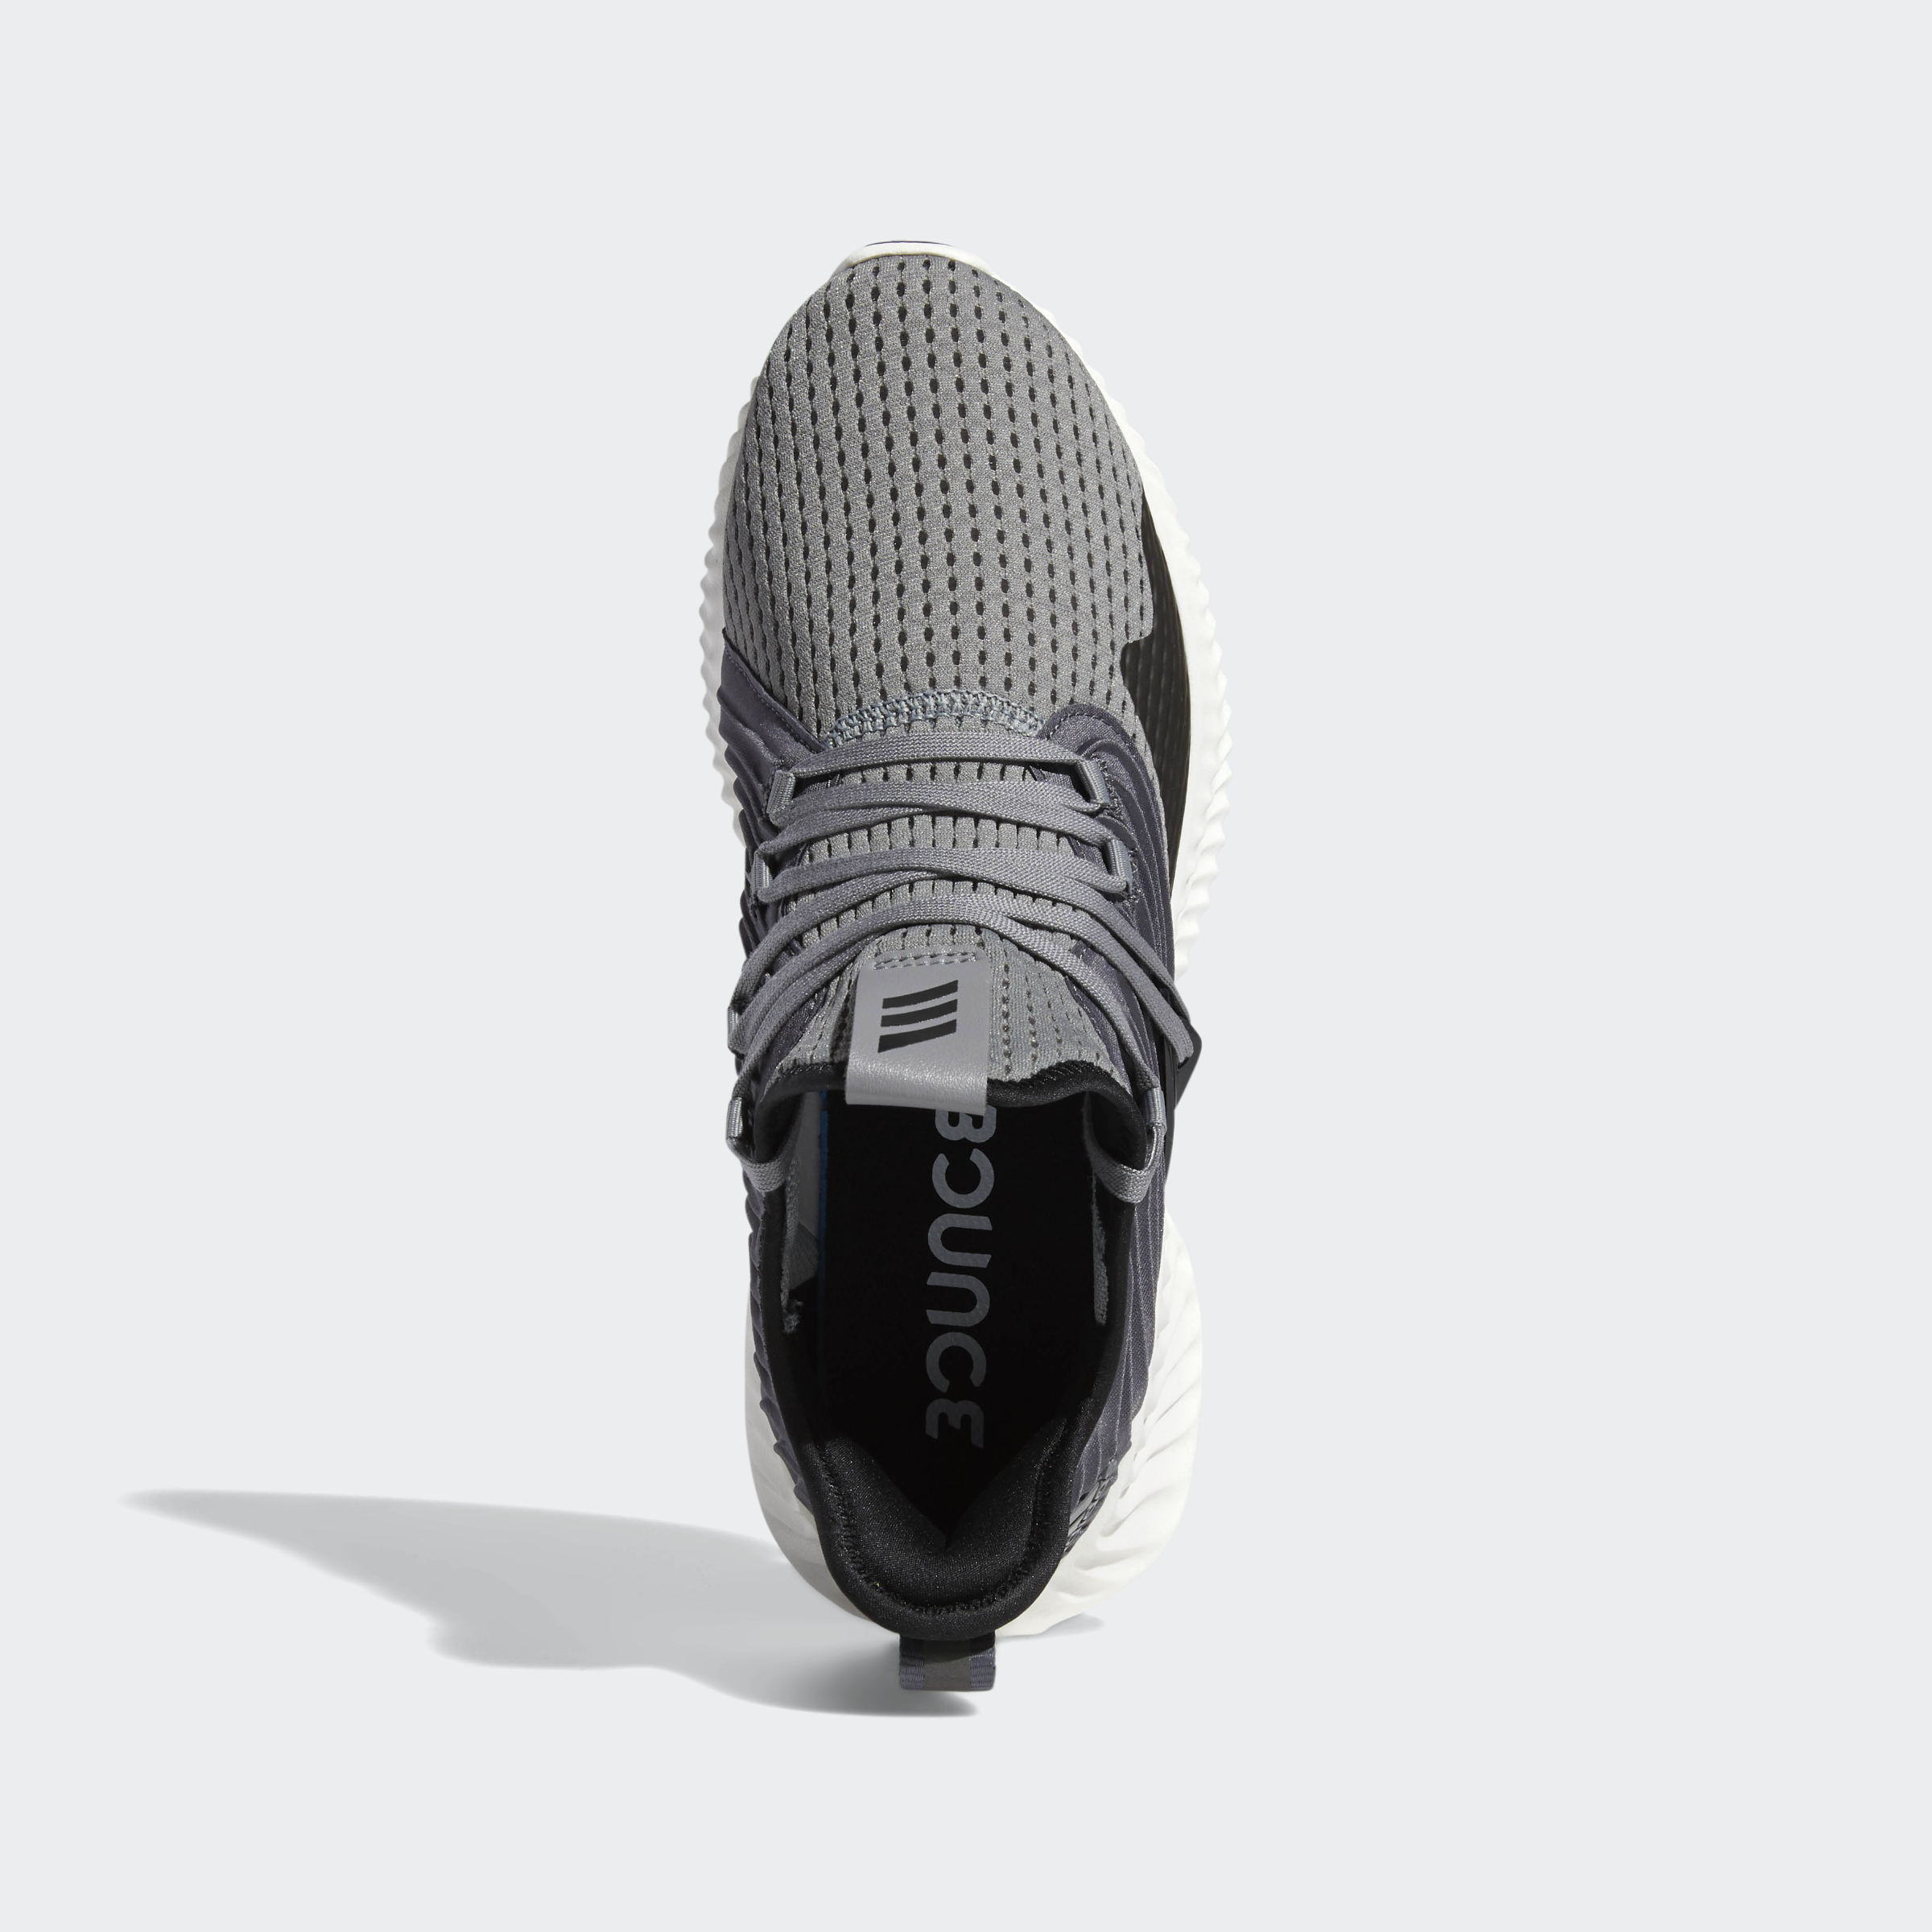 adidas-Alphabounce-Instinct-Clima-Shoes-Men-039-s-Athletic-amp-Sneakers thumbnail 16